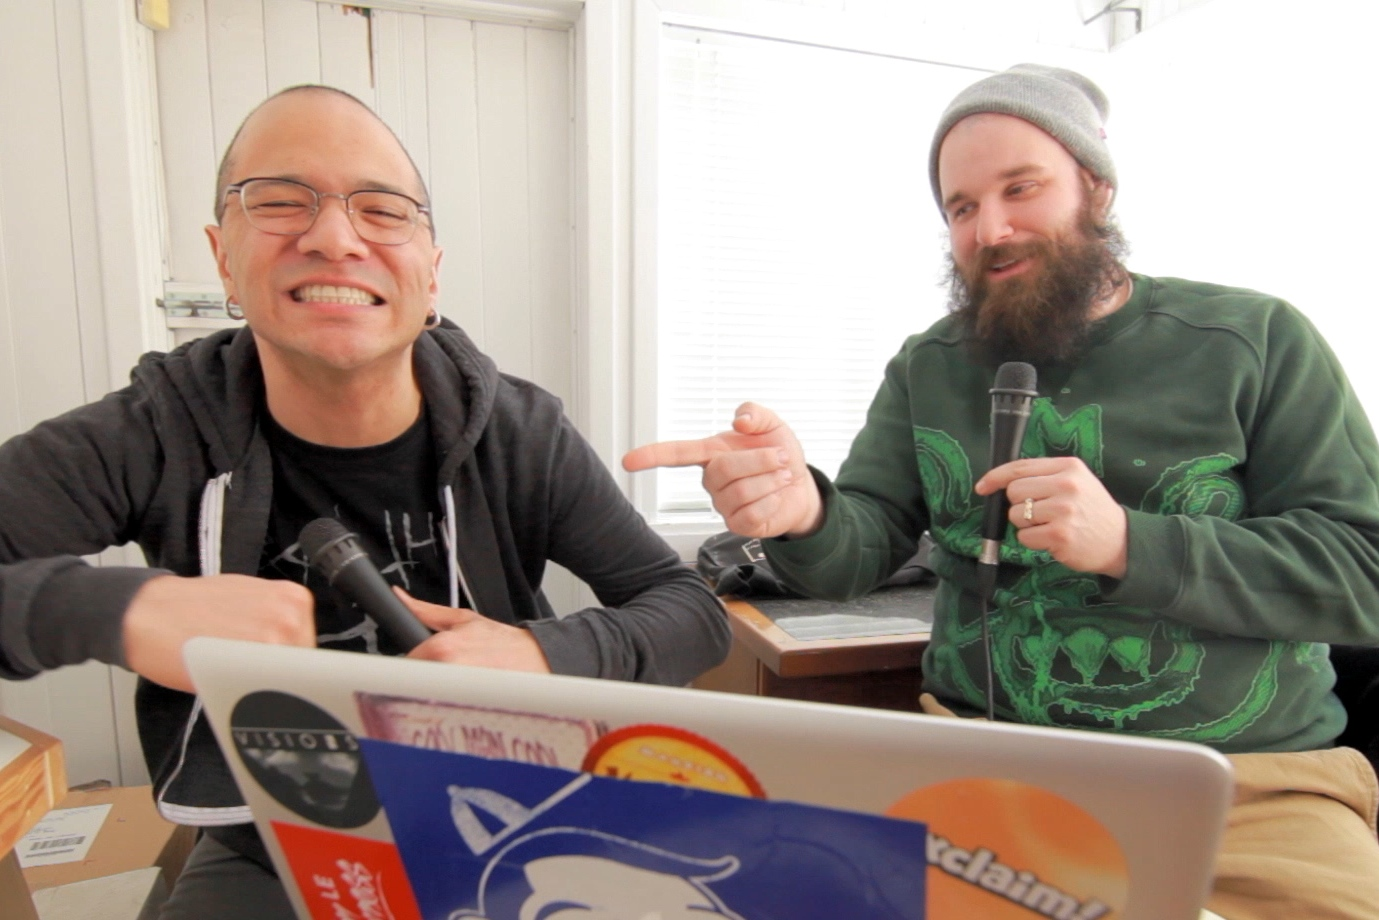 Danko Jones and Damian Abraham on Exclaim! TV Chatroom (Part 2)